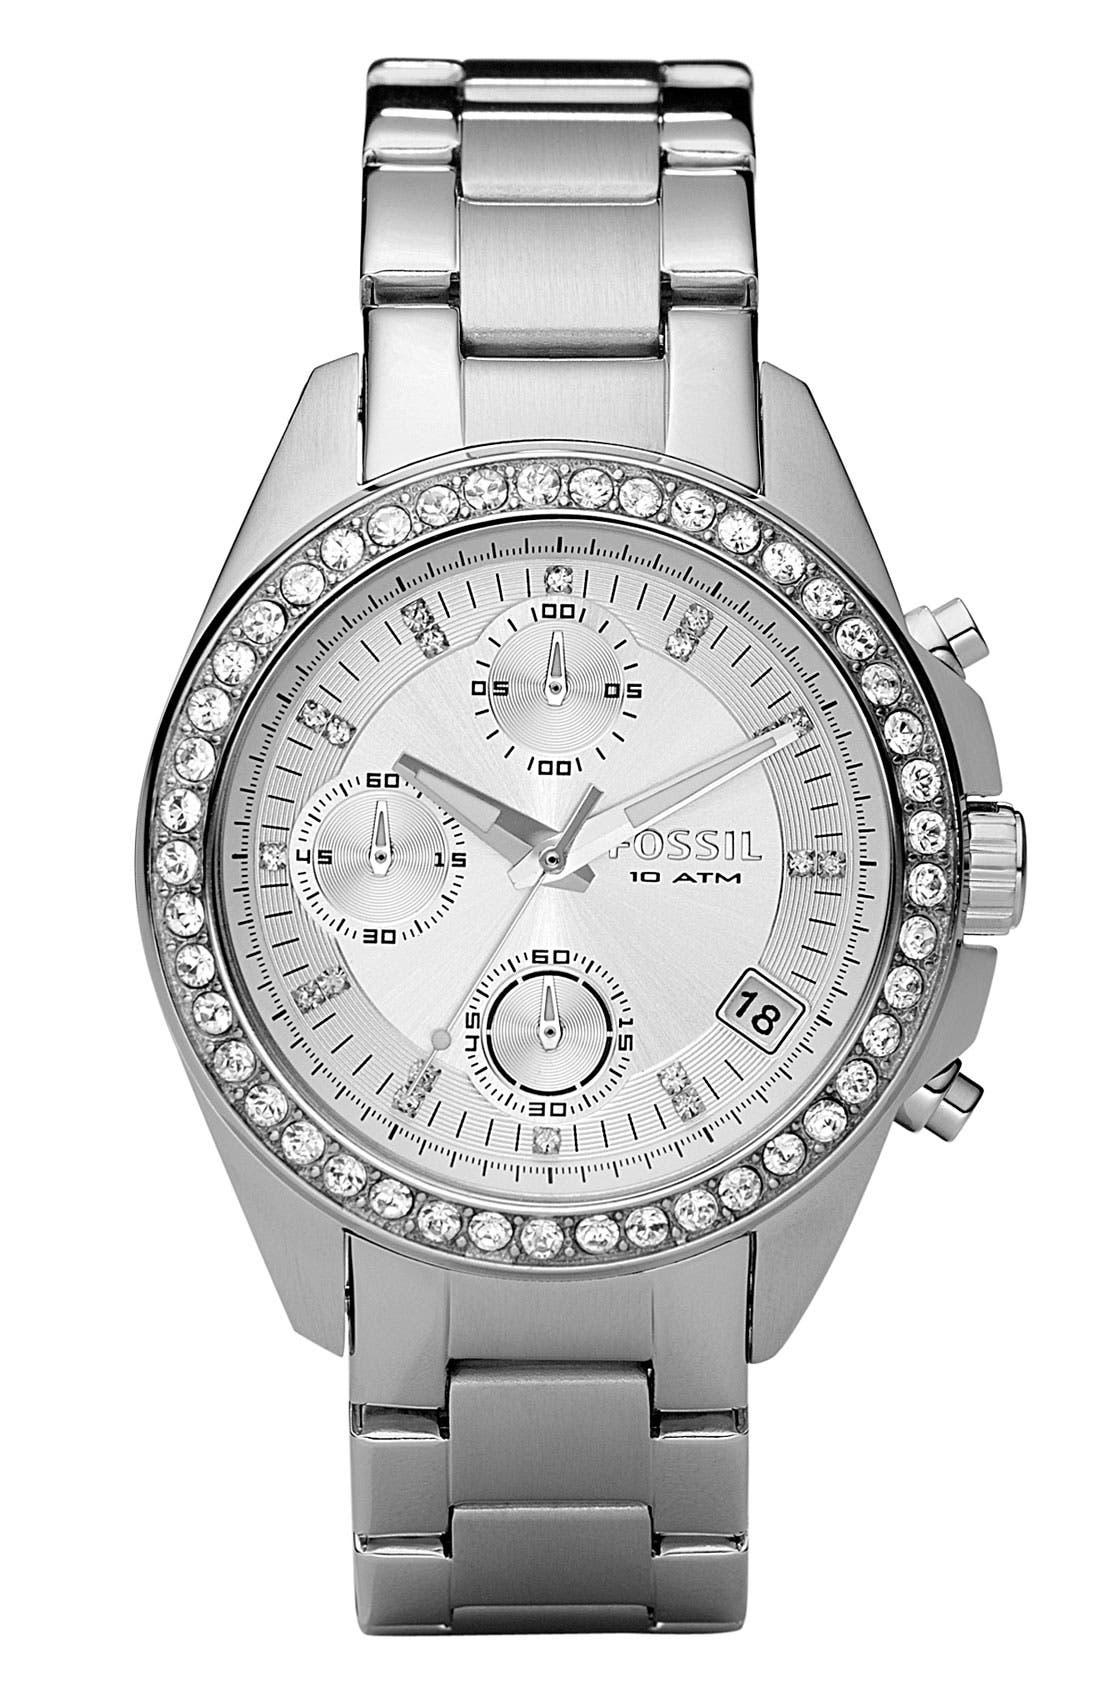 Main Image - Fossil Crystal Topring Chronograph Watch